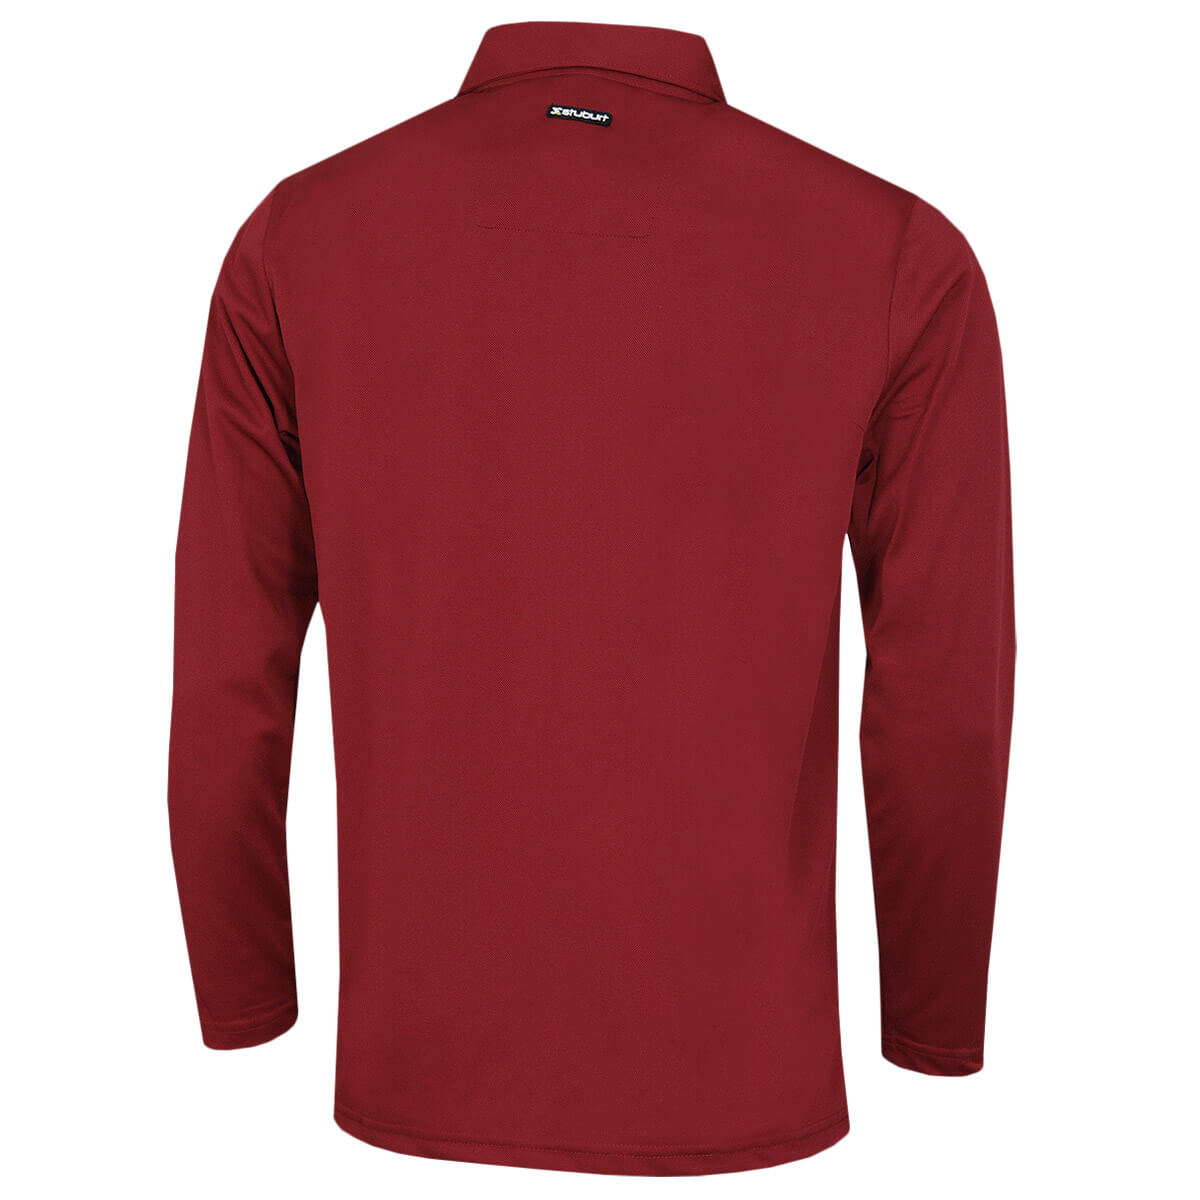 Stuburt-Mens-Urban-Long-Sleeve-Wicking-Breathable-Golf-Polo-Shirt-33-OFF-RRP thumbnail 8